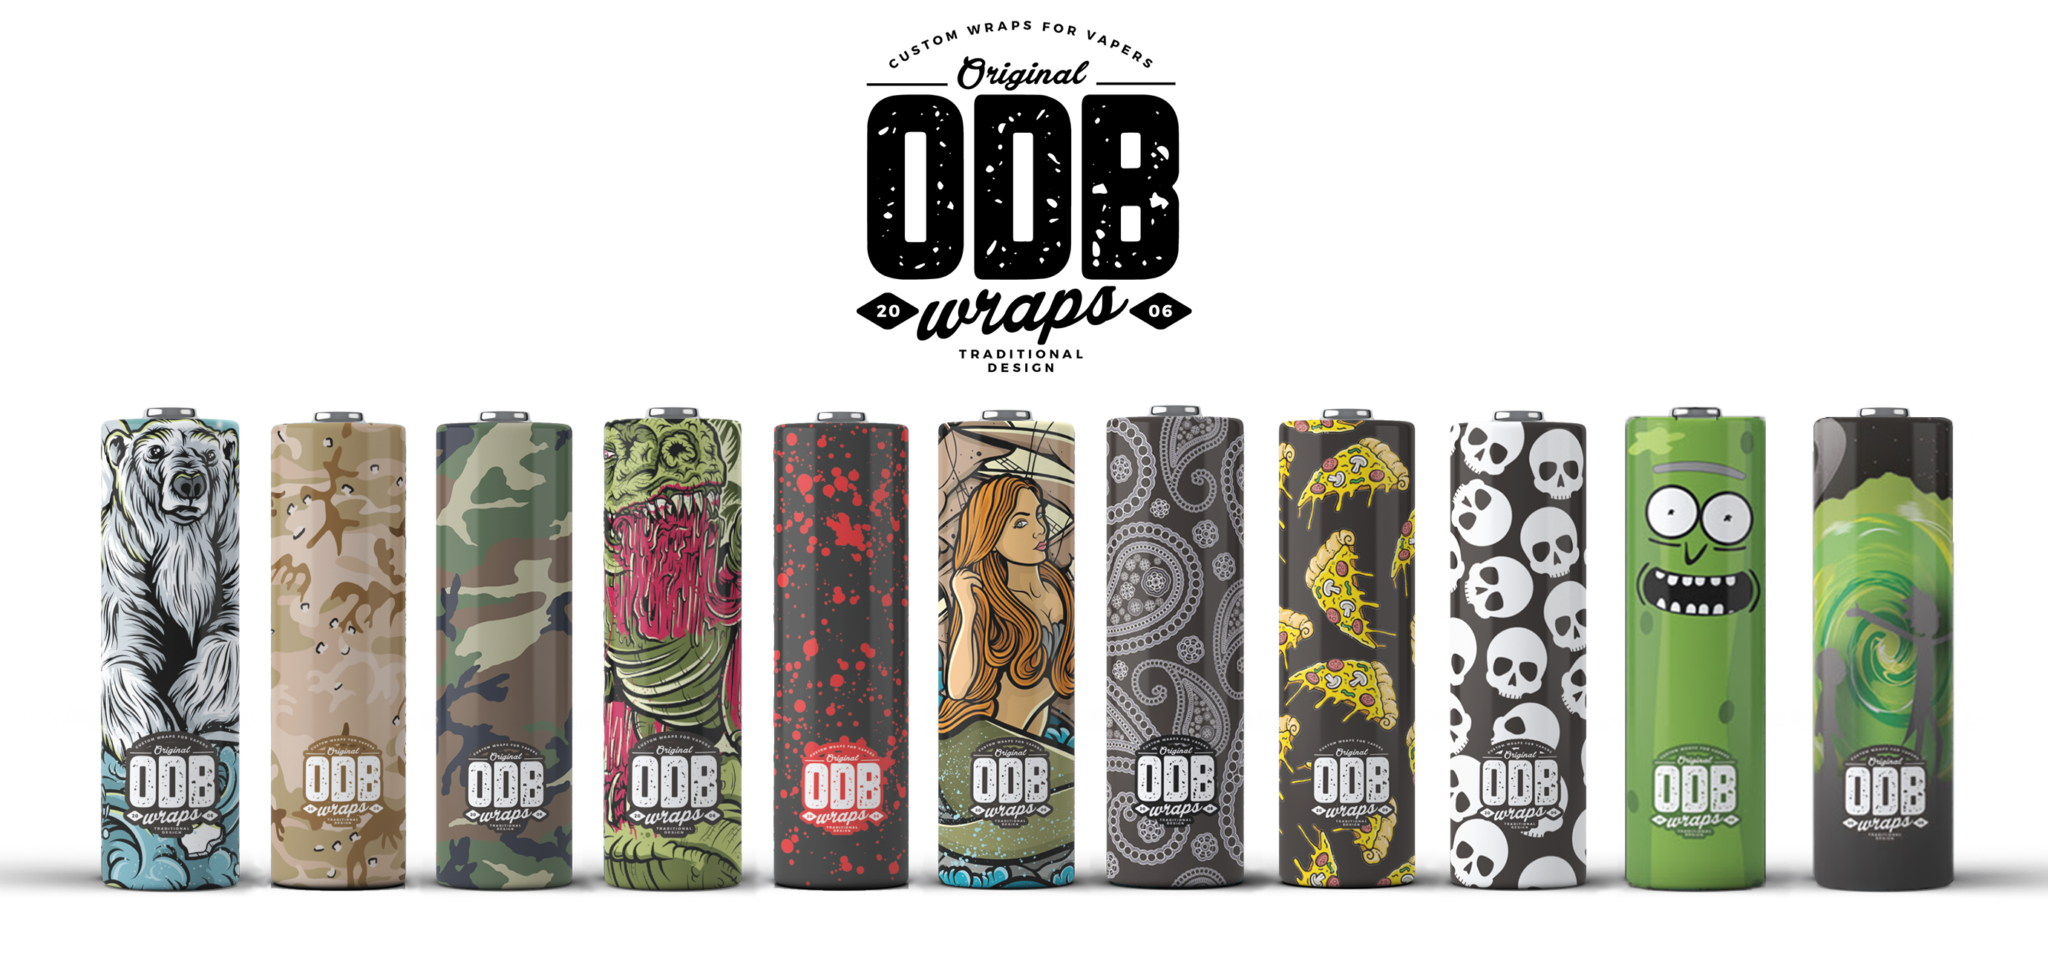 Original Dirty Bastardz/ODB battery wraps (Pack of 4)